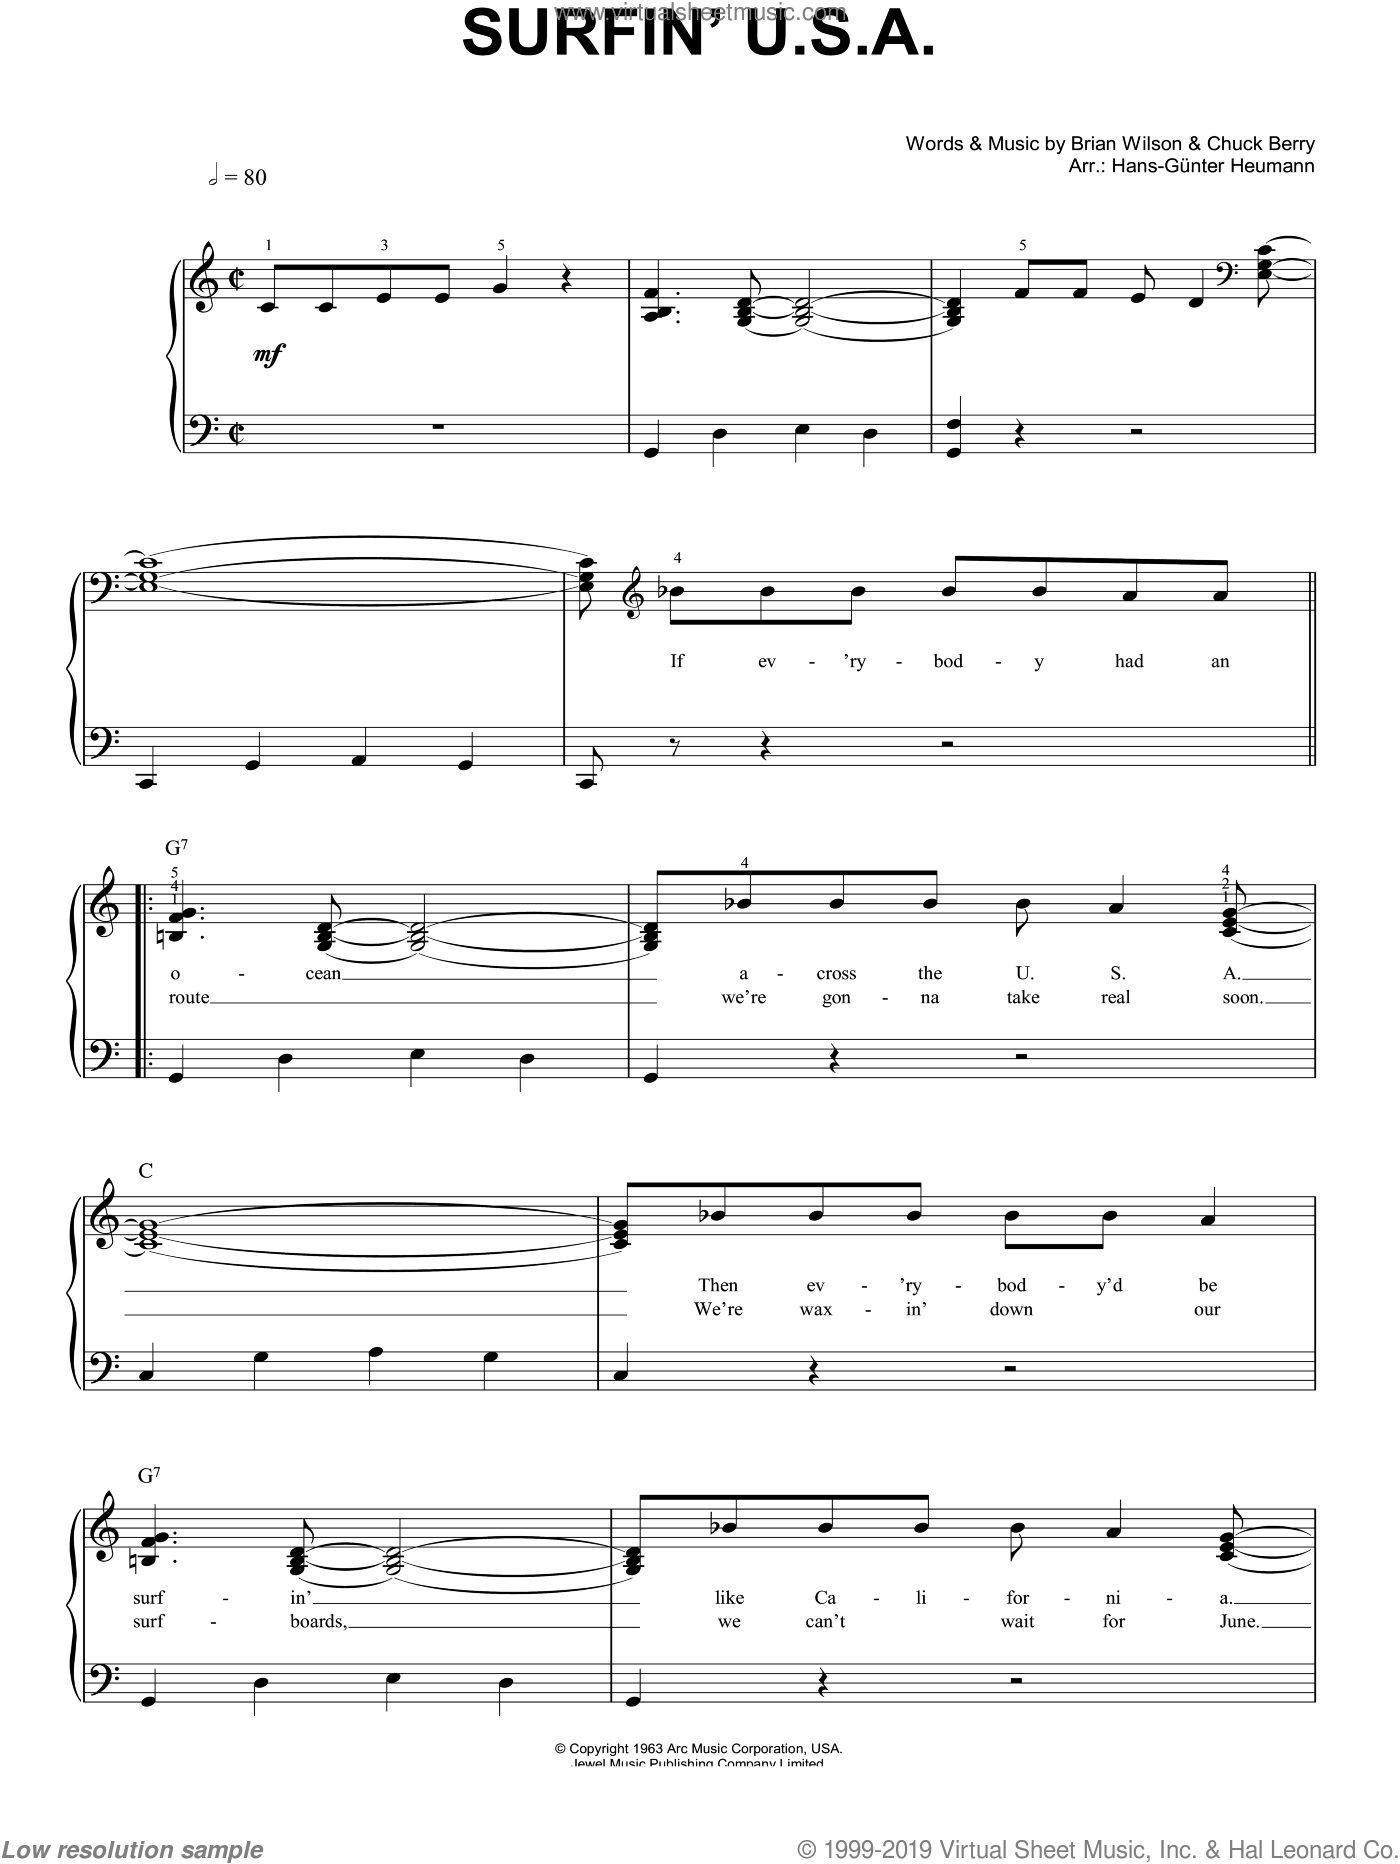 Surfin' U.S.A. sheet music for piano solo (chords) by Brian Wilson